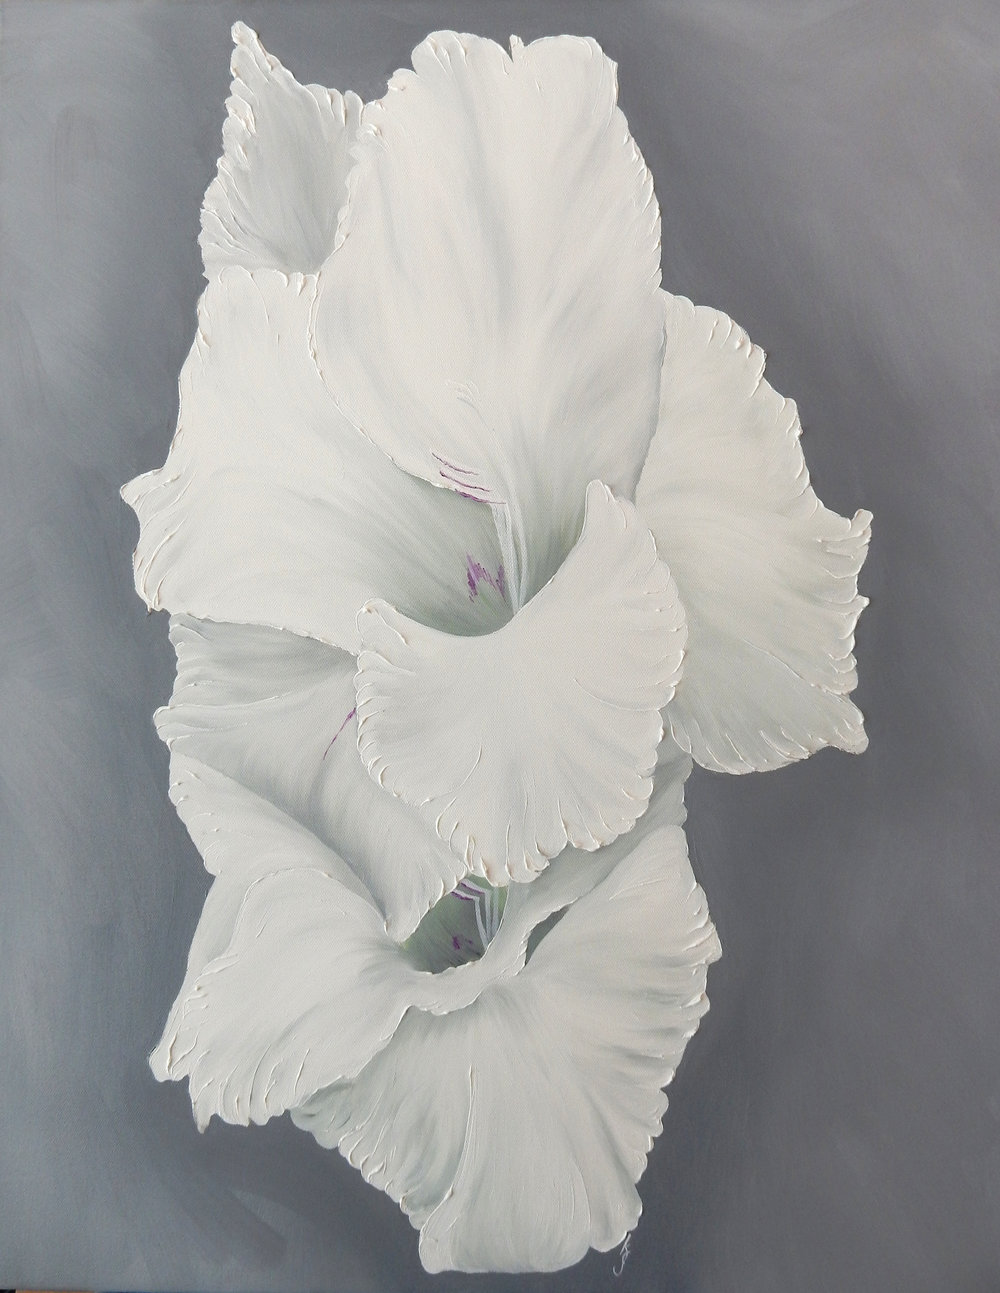 White Gladiolus Double II  2017 Oil on canvas 28 x 22 x 1.5 inches